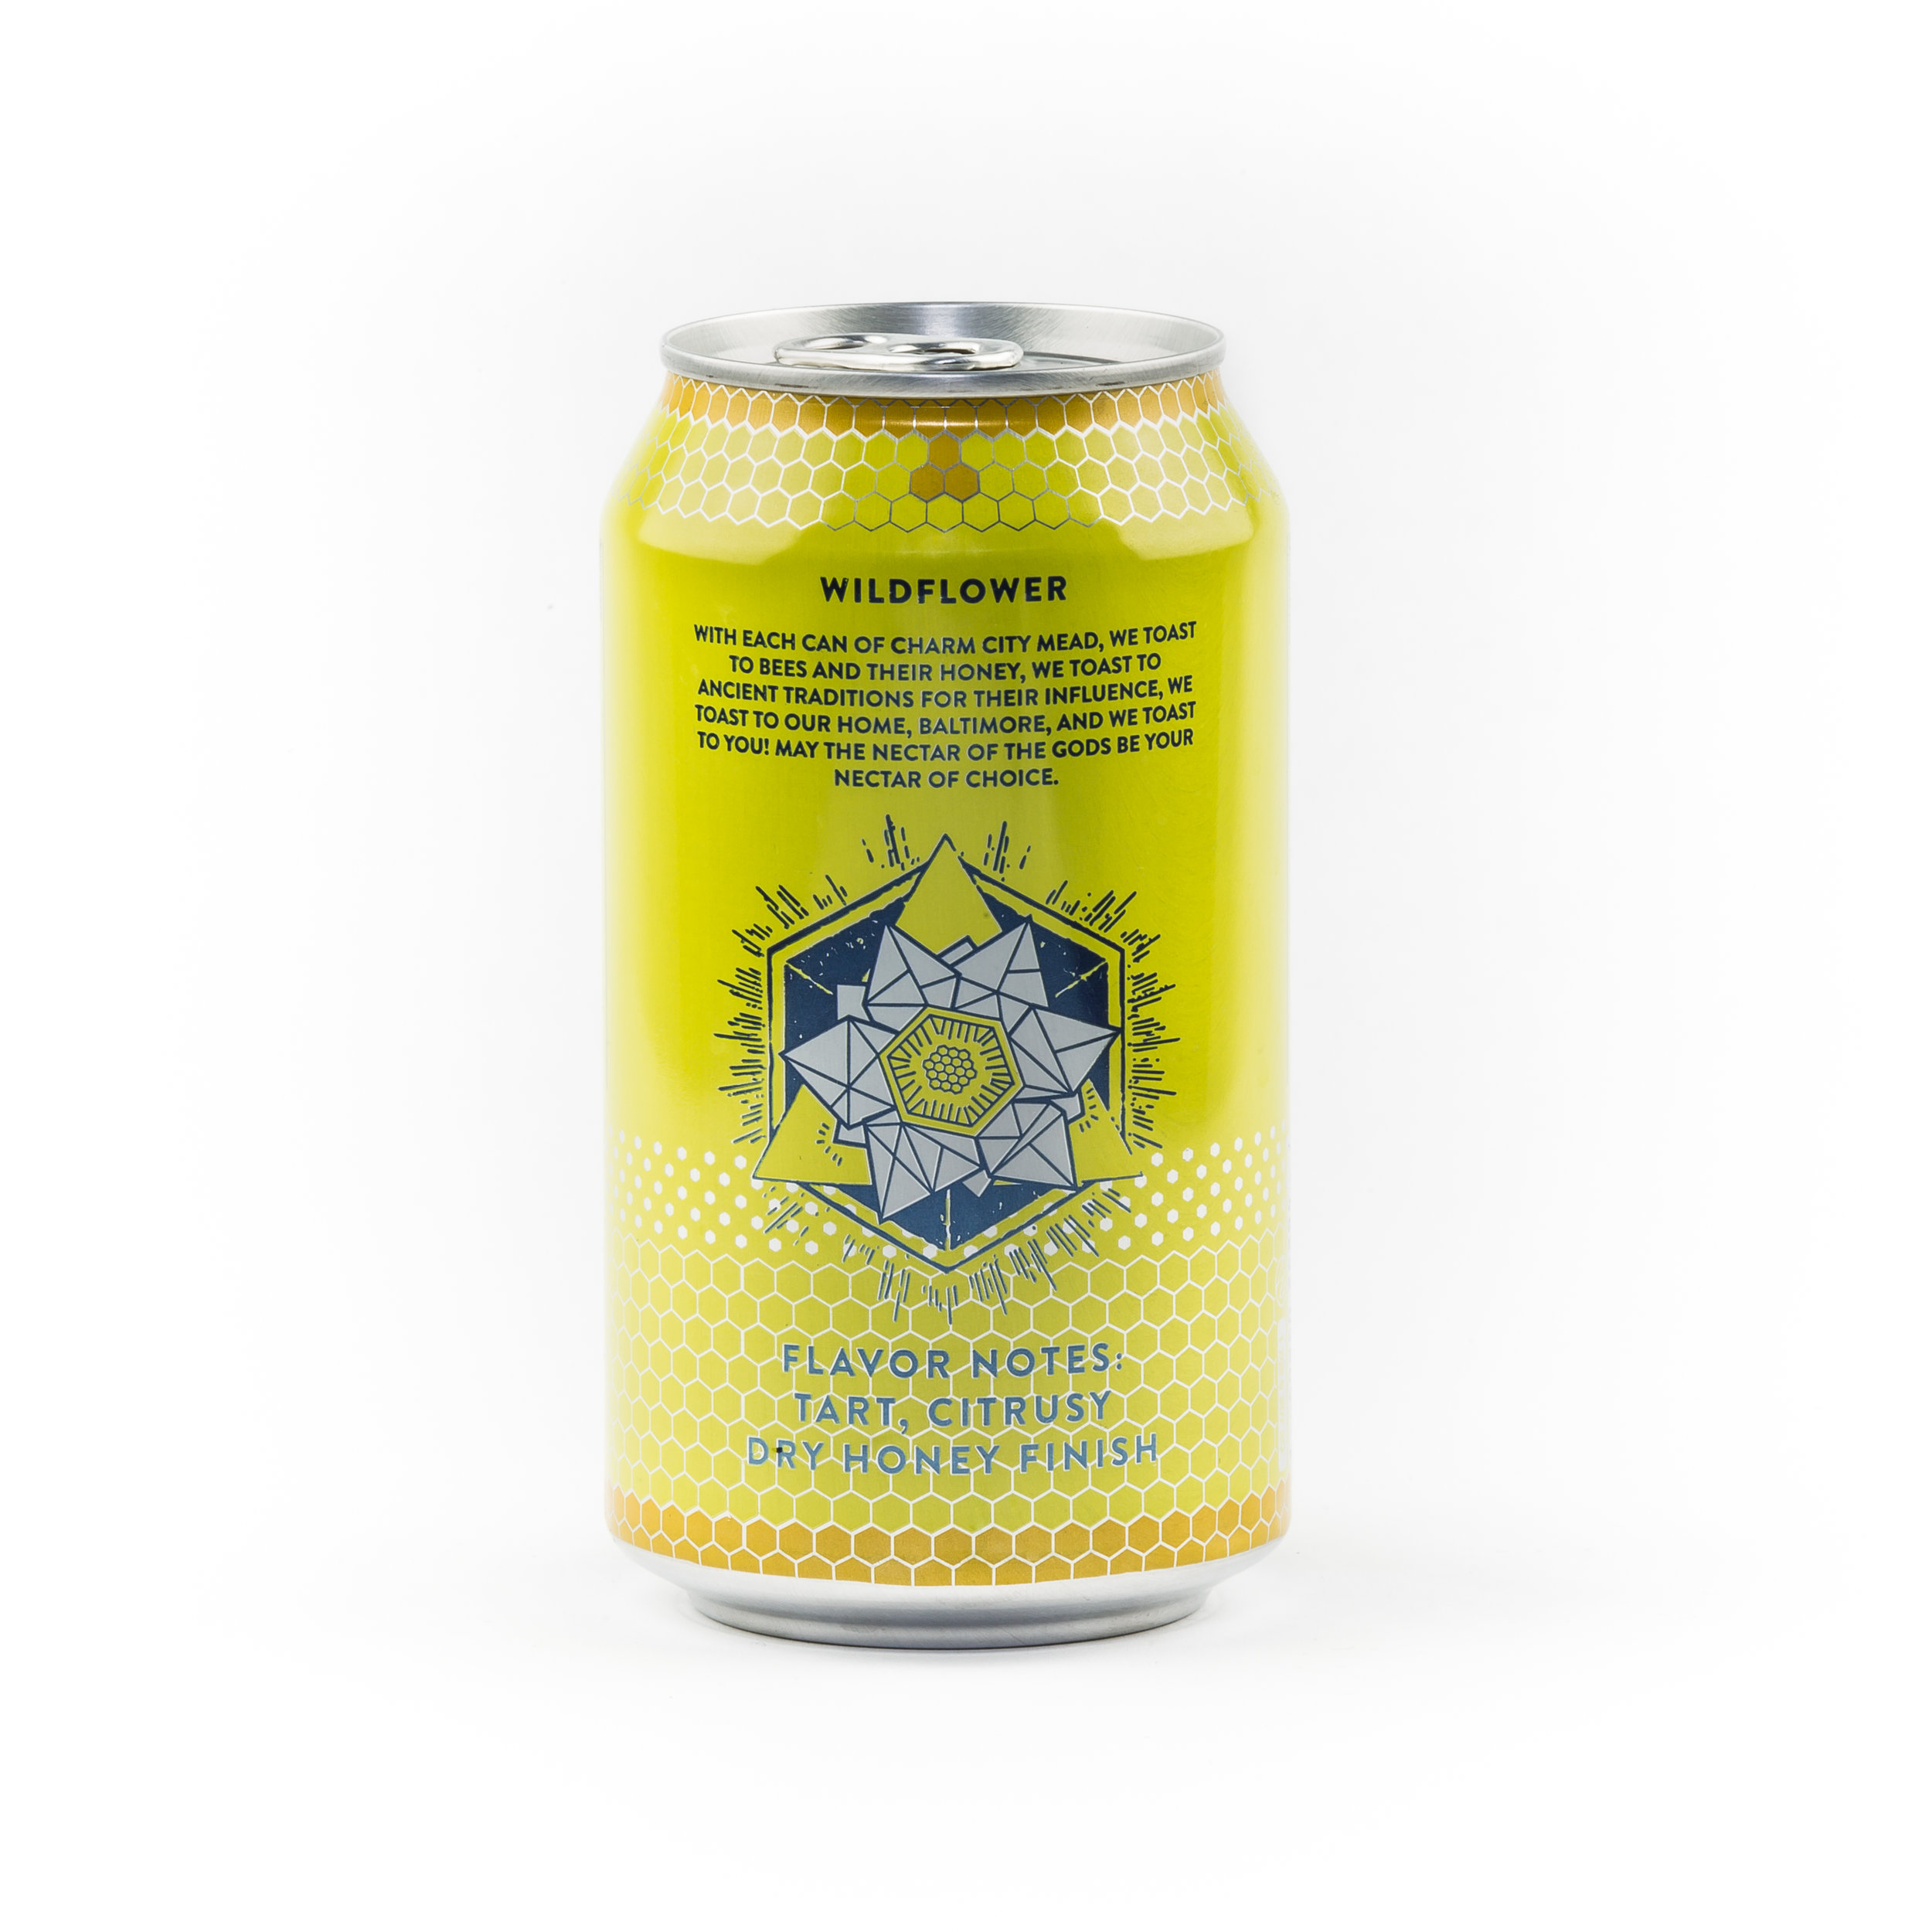 Wildflower Sparkling Canned Draft Mead